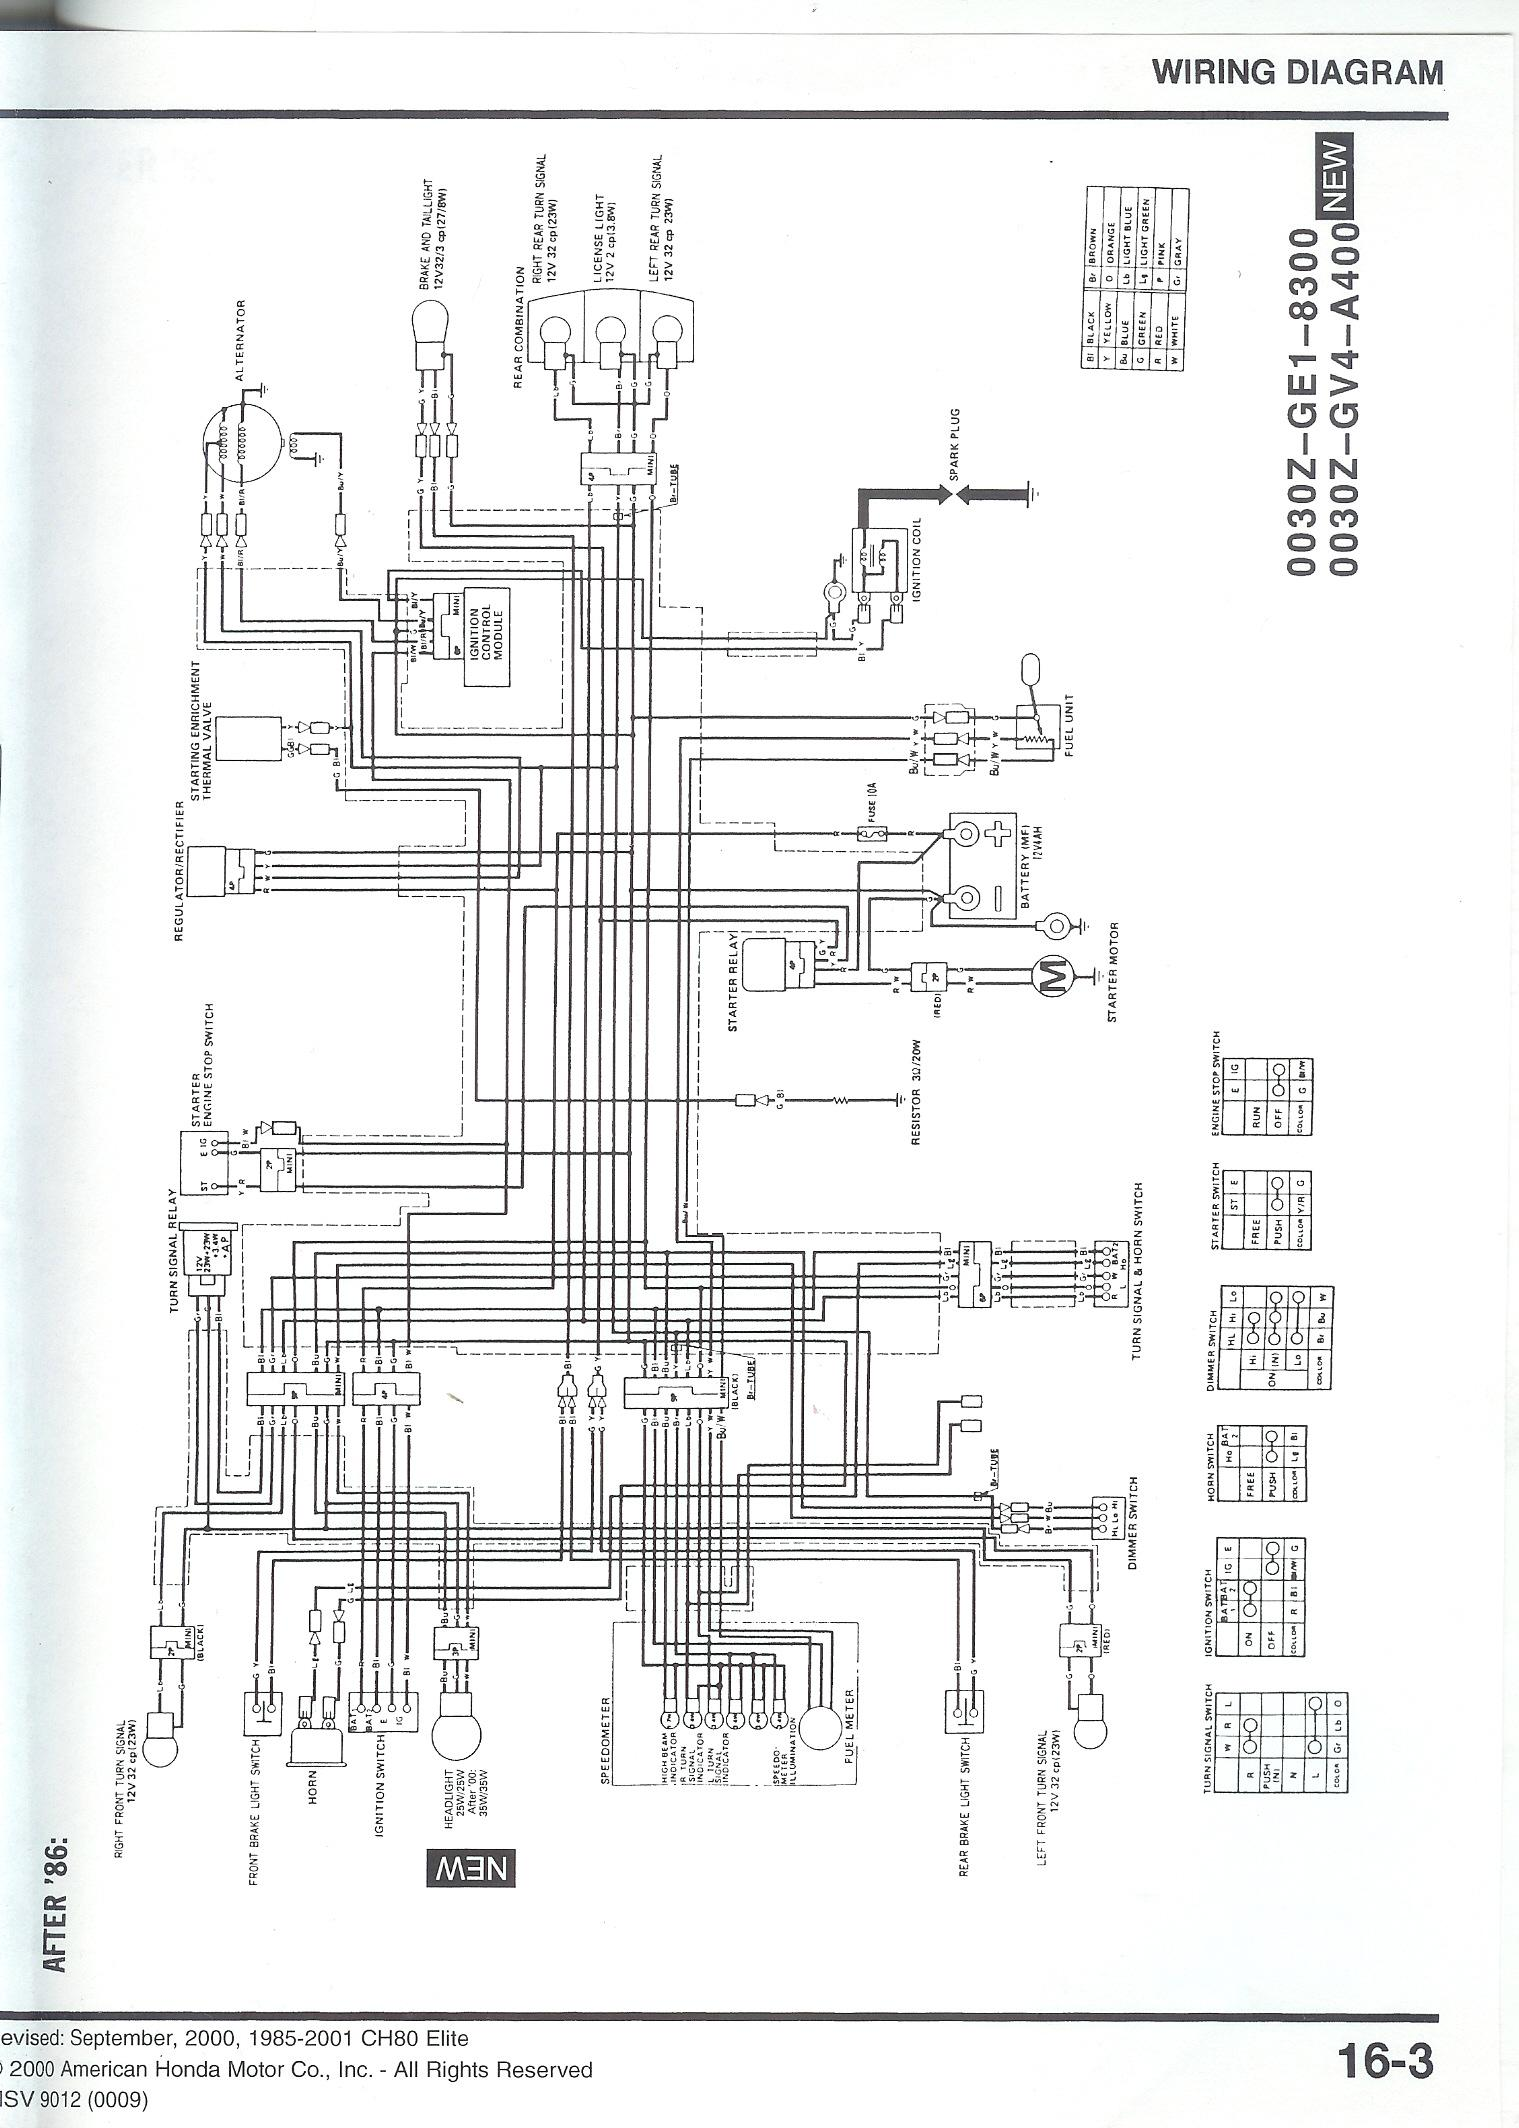 Honda Elite Wiring Diagram Wiring Diagram